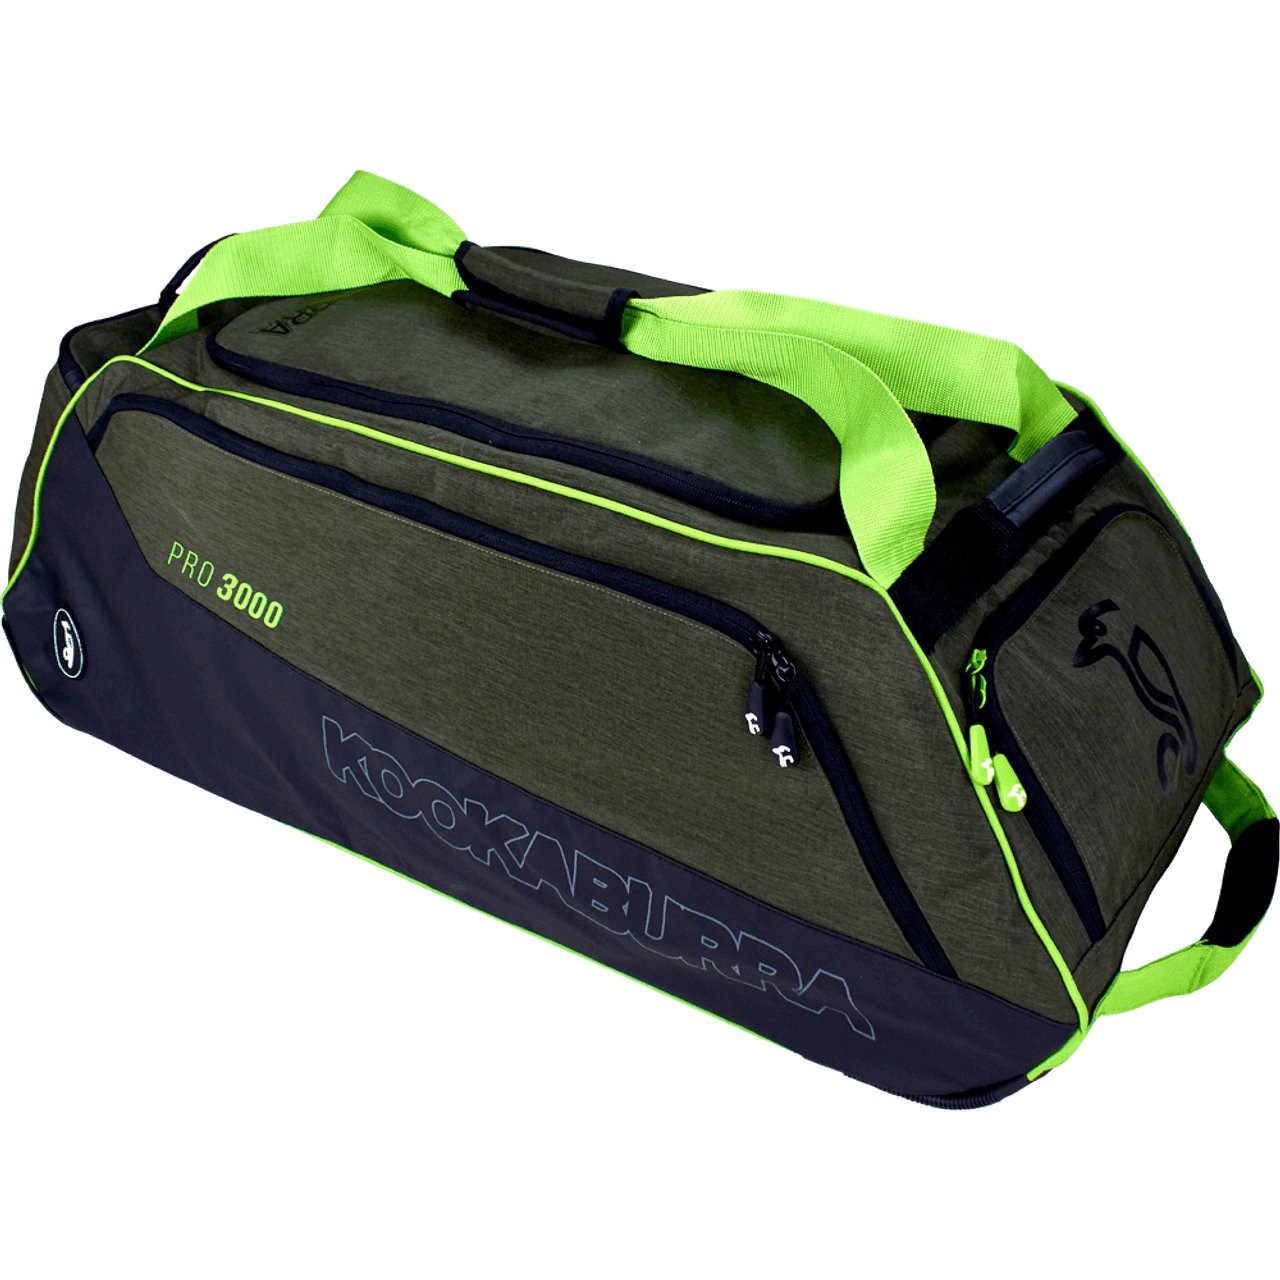 fa1cb0505 Kookaburra Pro 3000 Wheelie Cricket Kit Bag - Khaki 2019